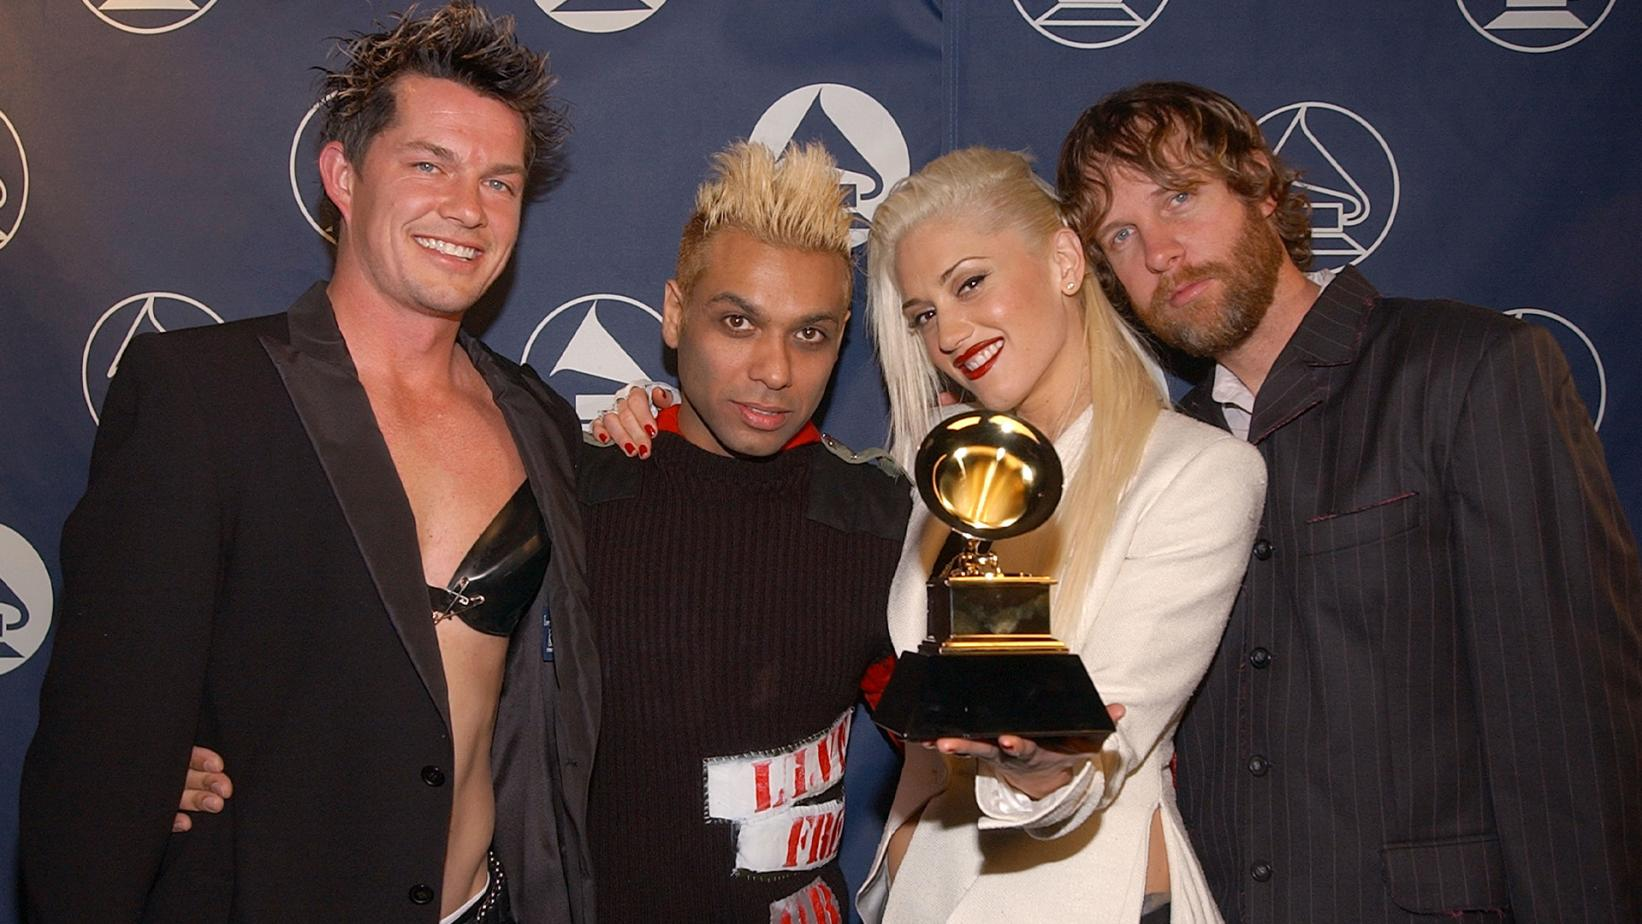 No Doubt pose backstage with GRAMMY at 2003 GRAMMYs